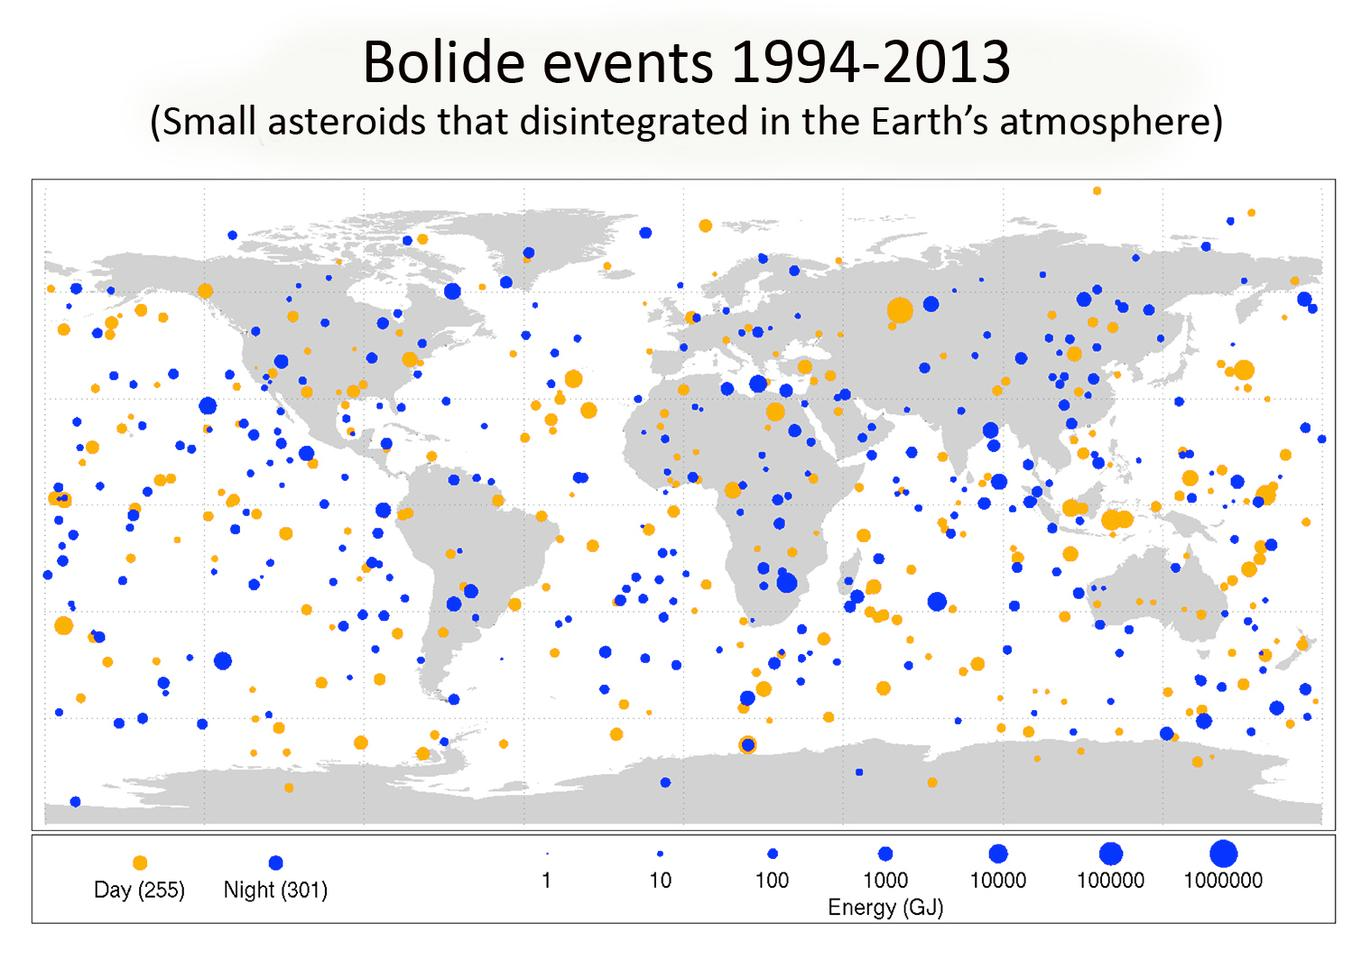 Small asteroids that disintegrated in the atmosphere between 1994-2013